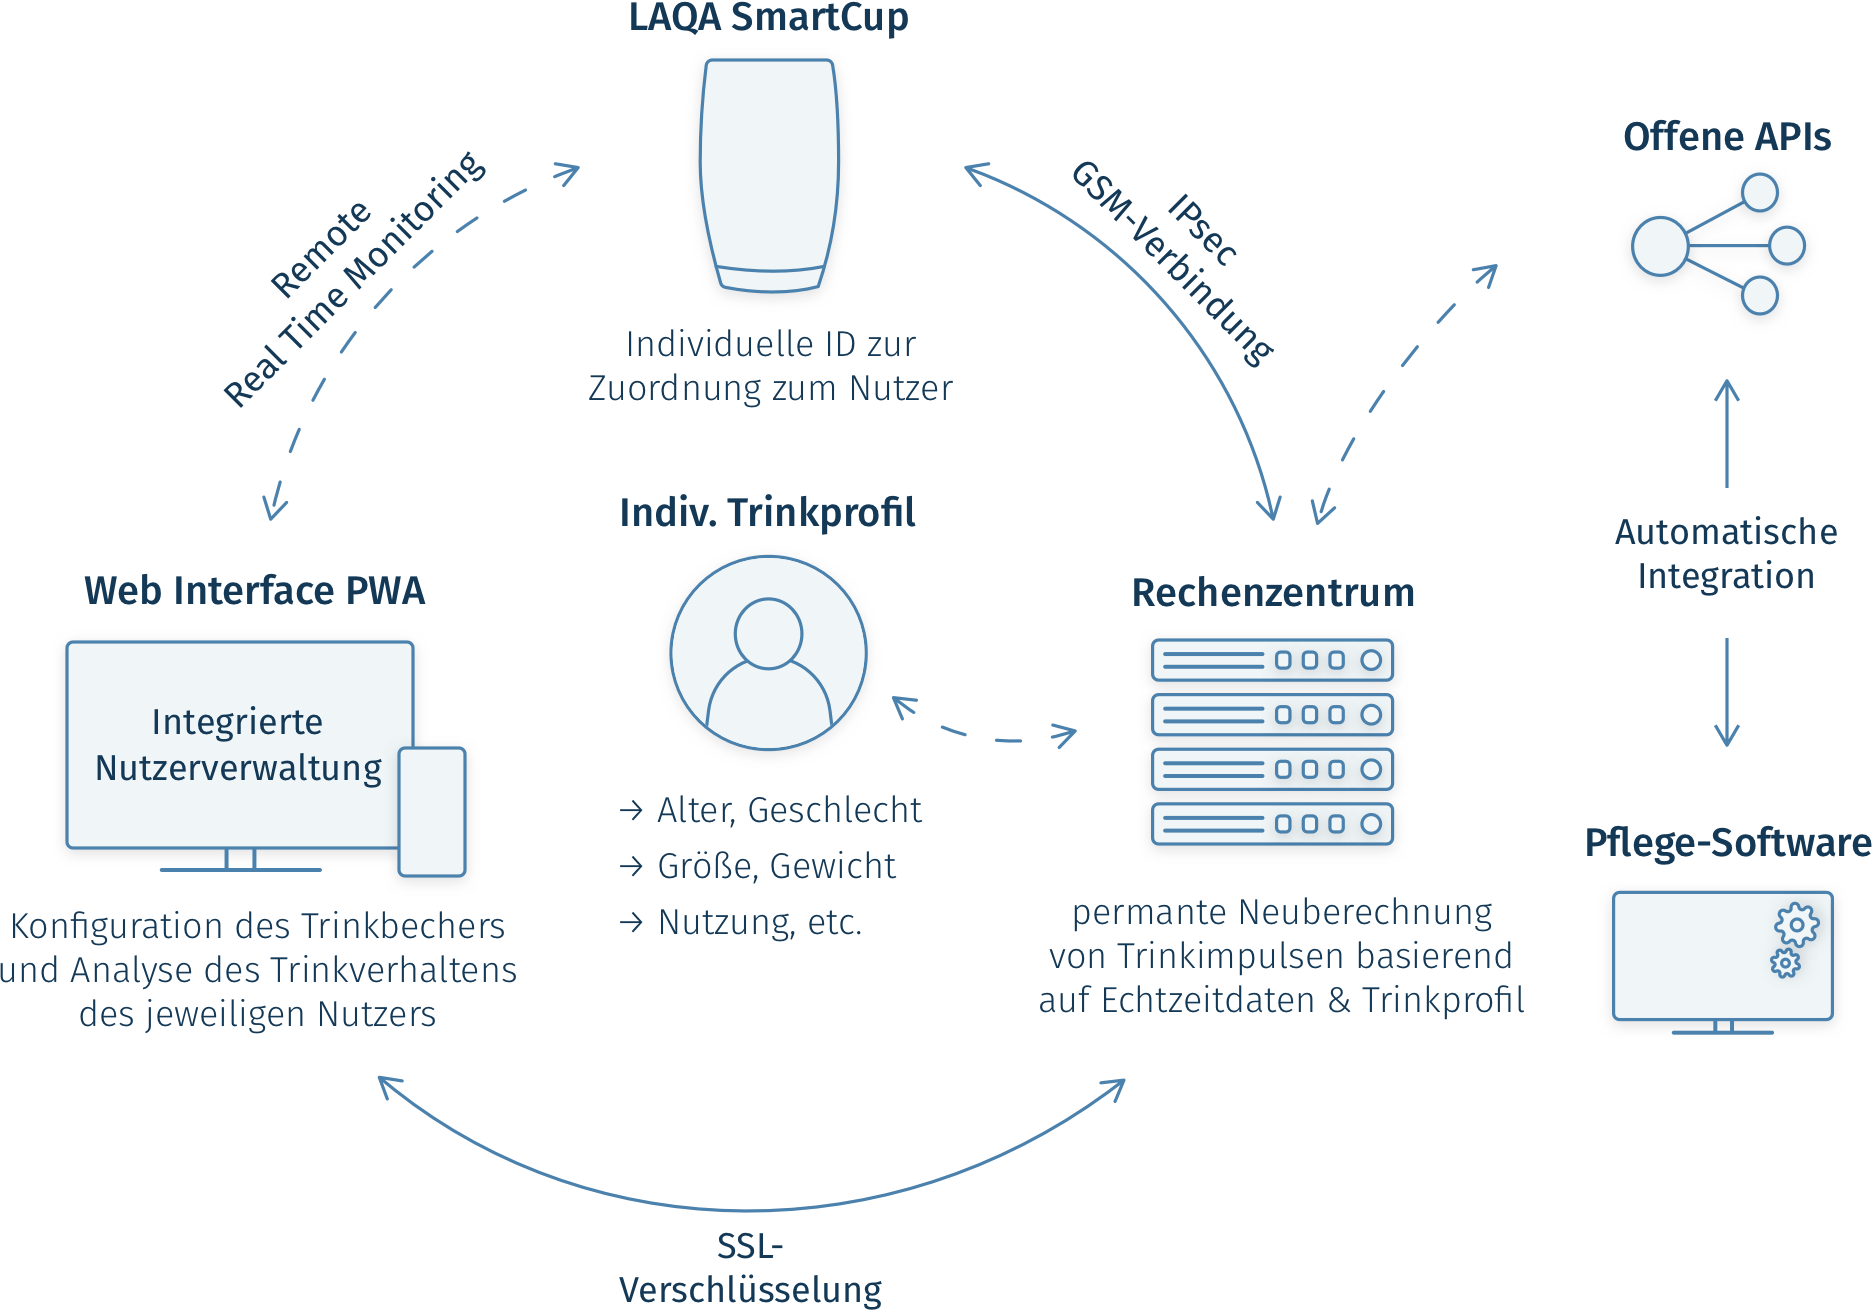 LAQA SmartCup information flow